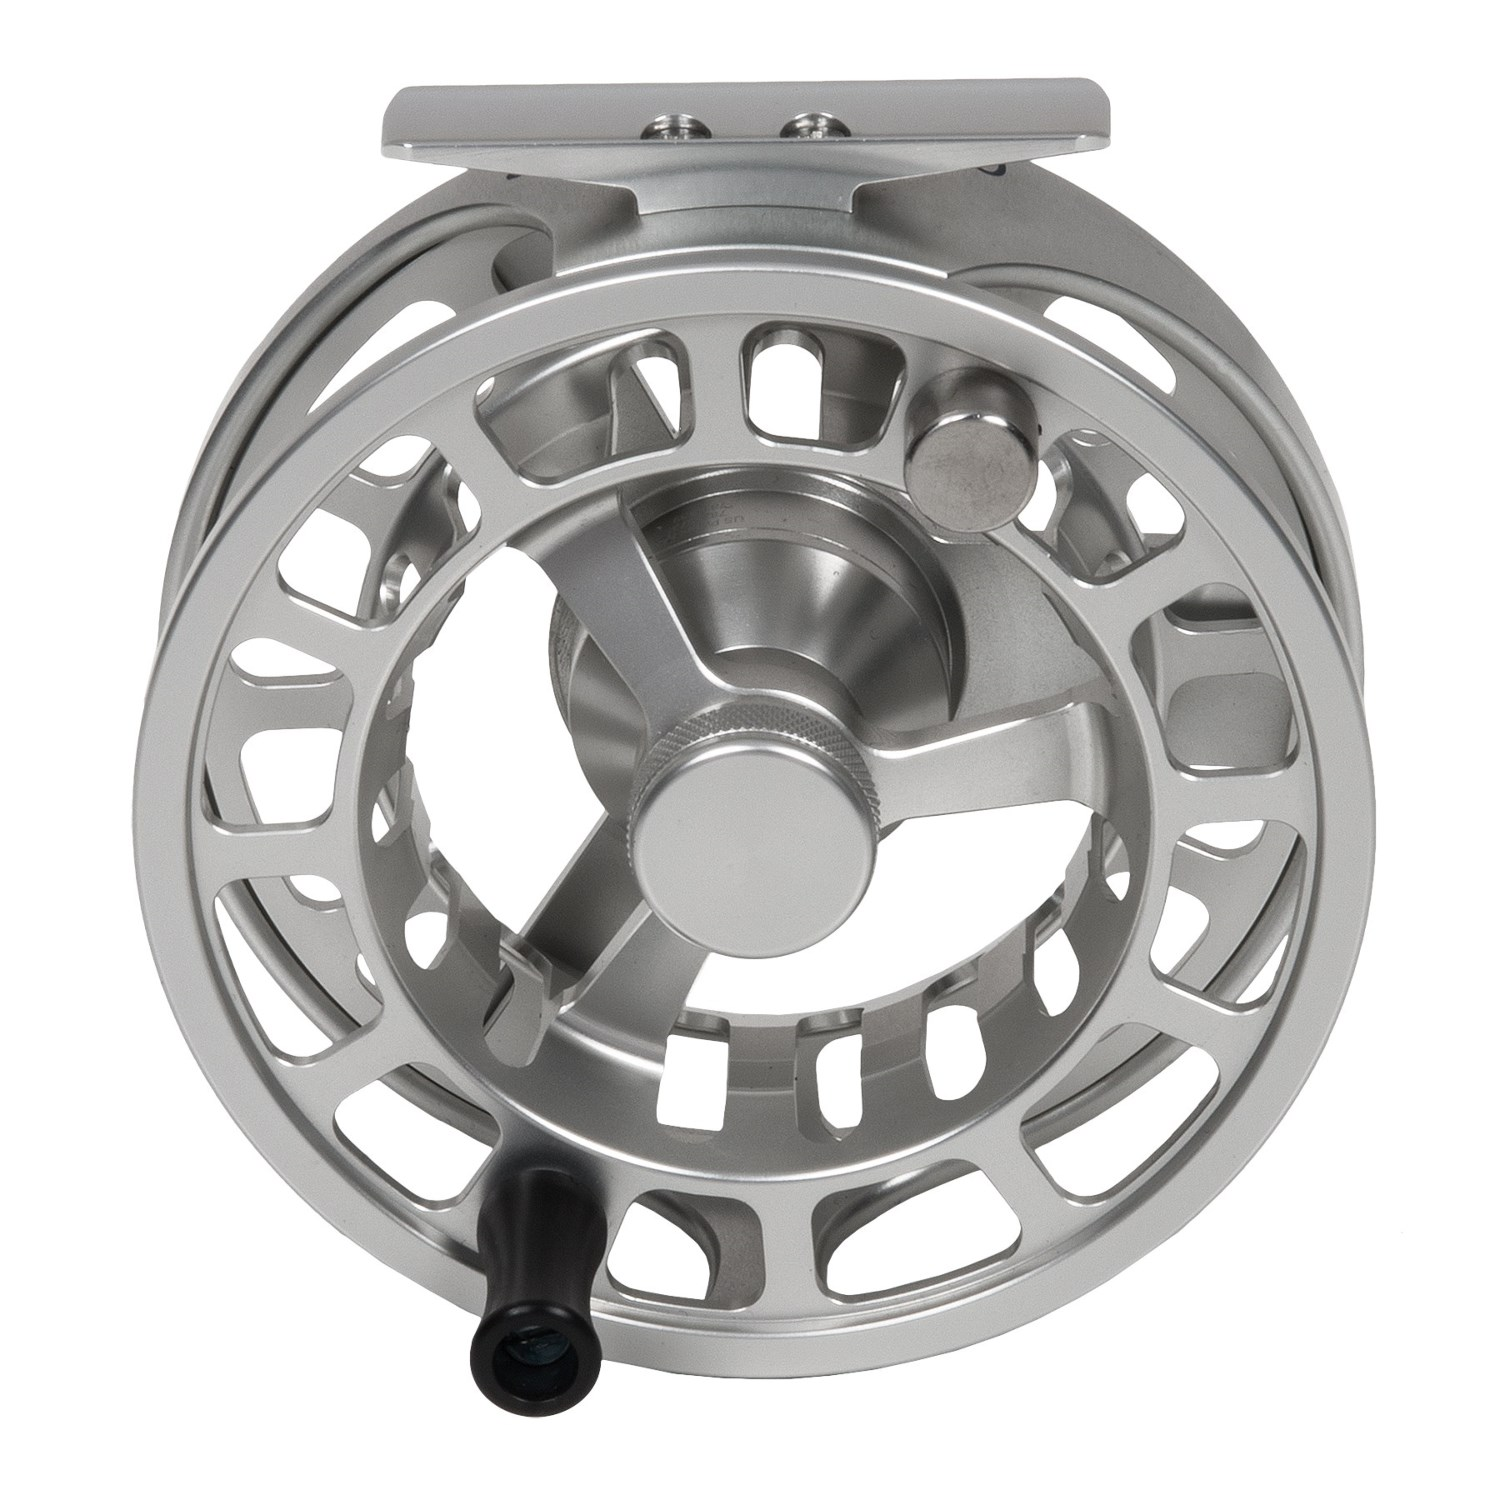 Cheeky fly fishing mojo 425 fly reel 7 10wt save 47 for Cheeky fly fishing